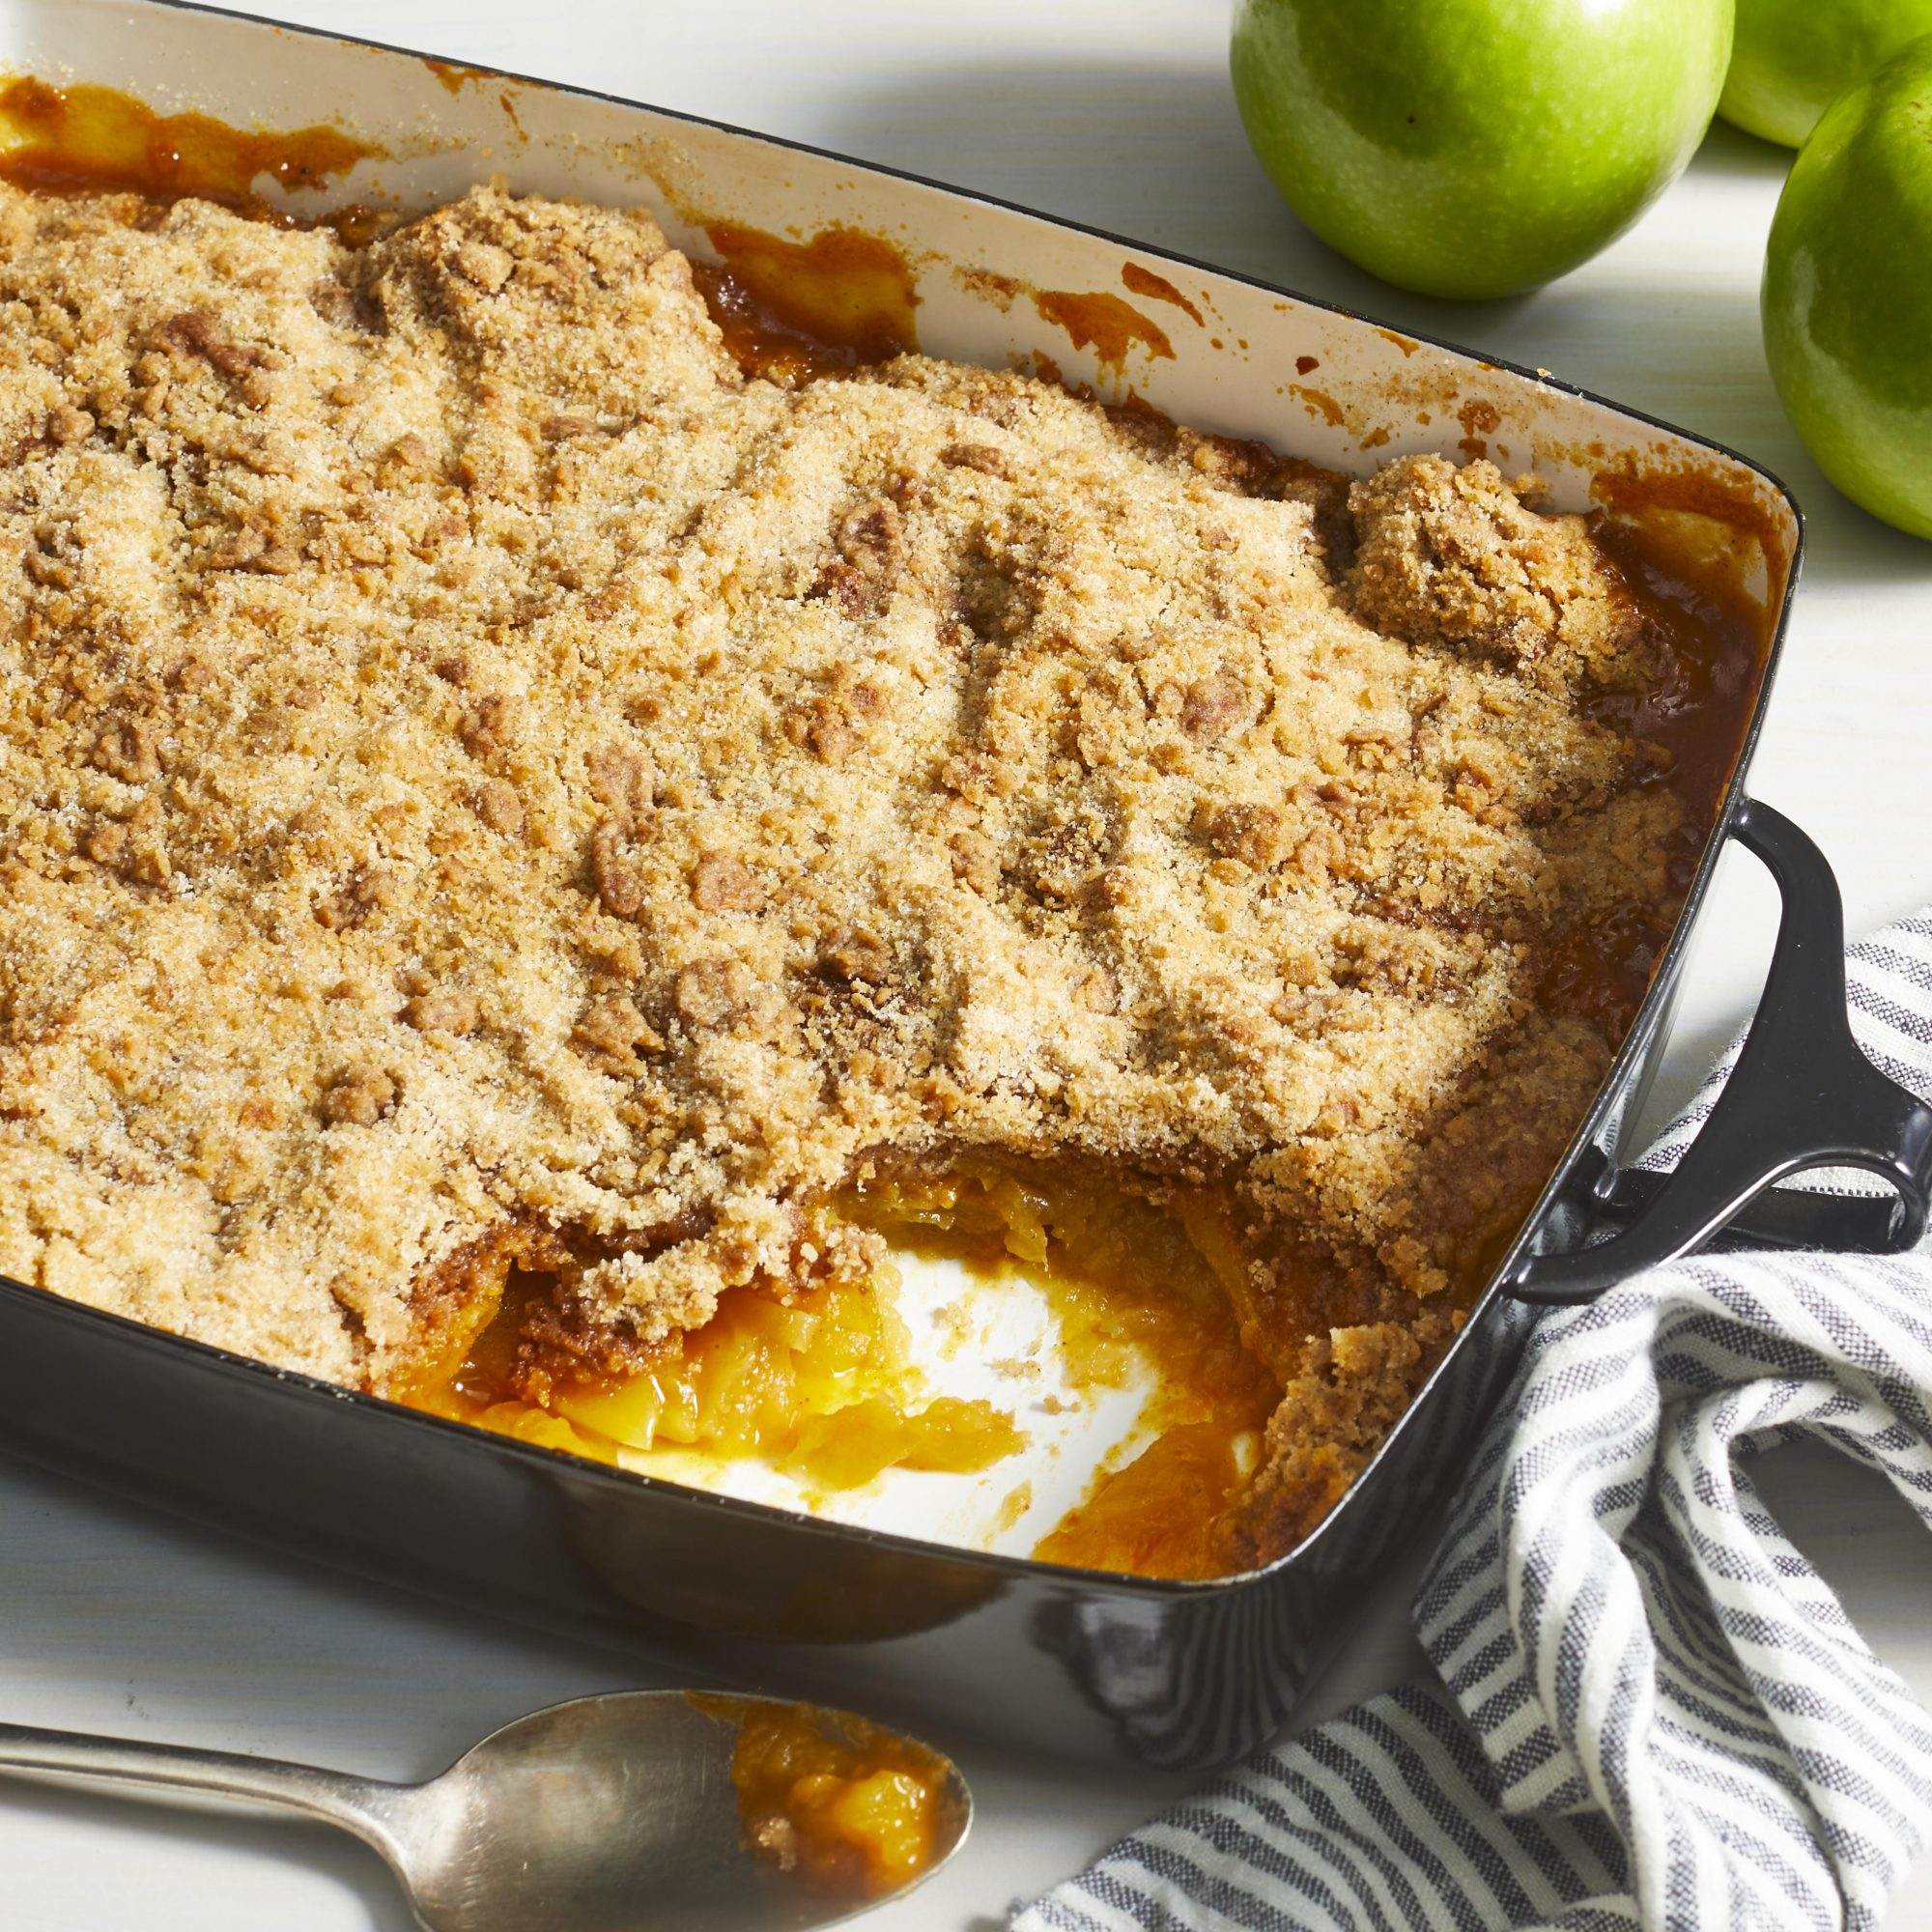 Cobbler baked in a 9x13-inch casserole pan with a scoop removed.